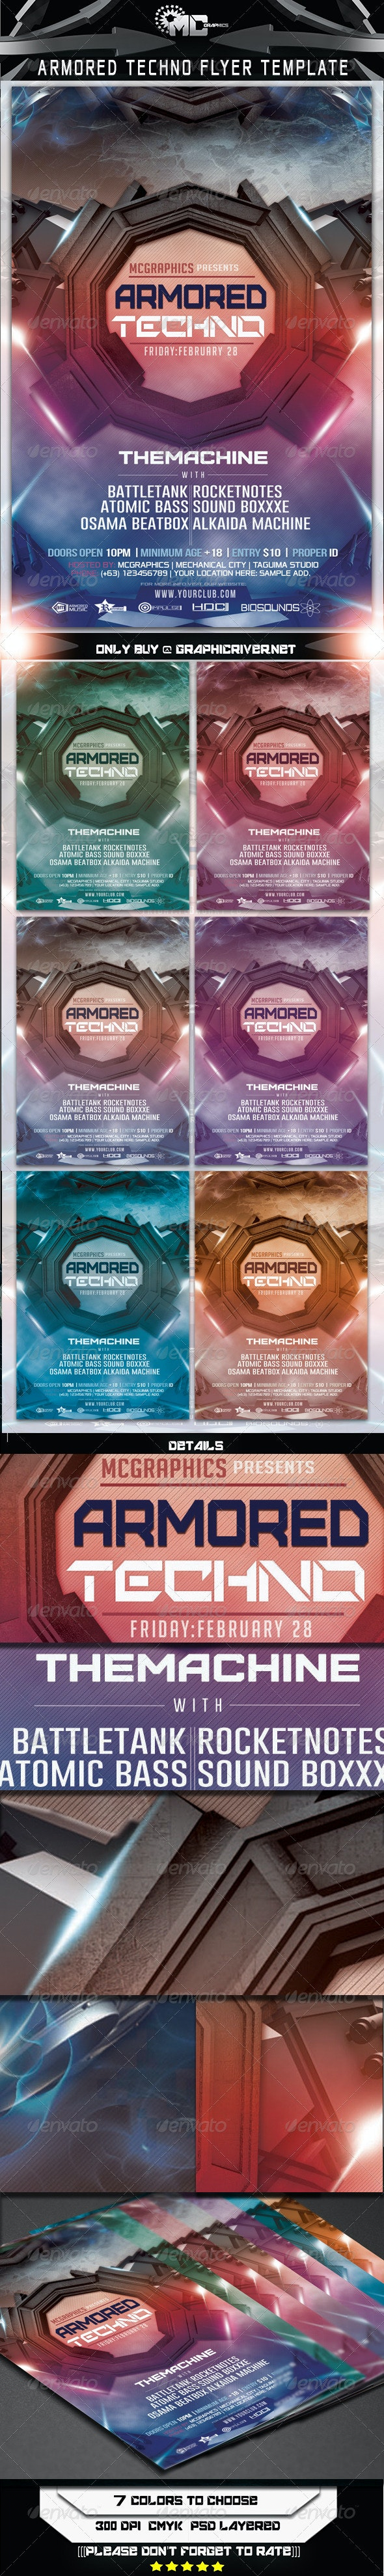 Armored Techno Flyer Template - Flyers Print Templates